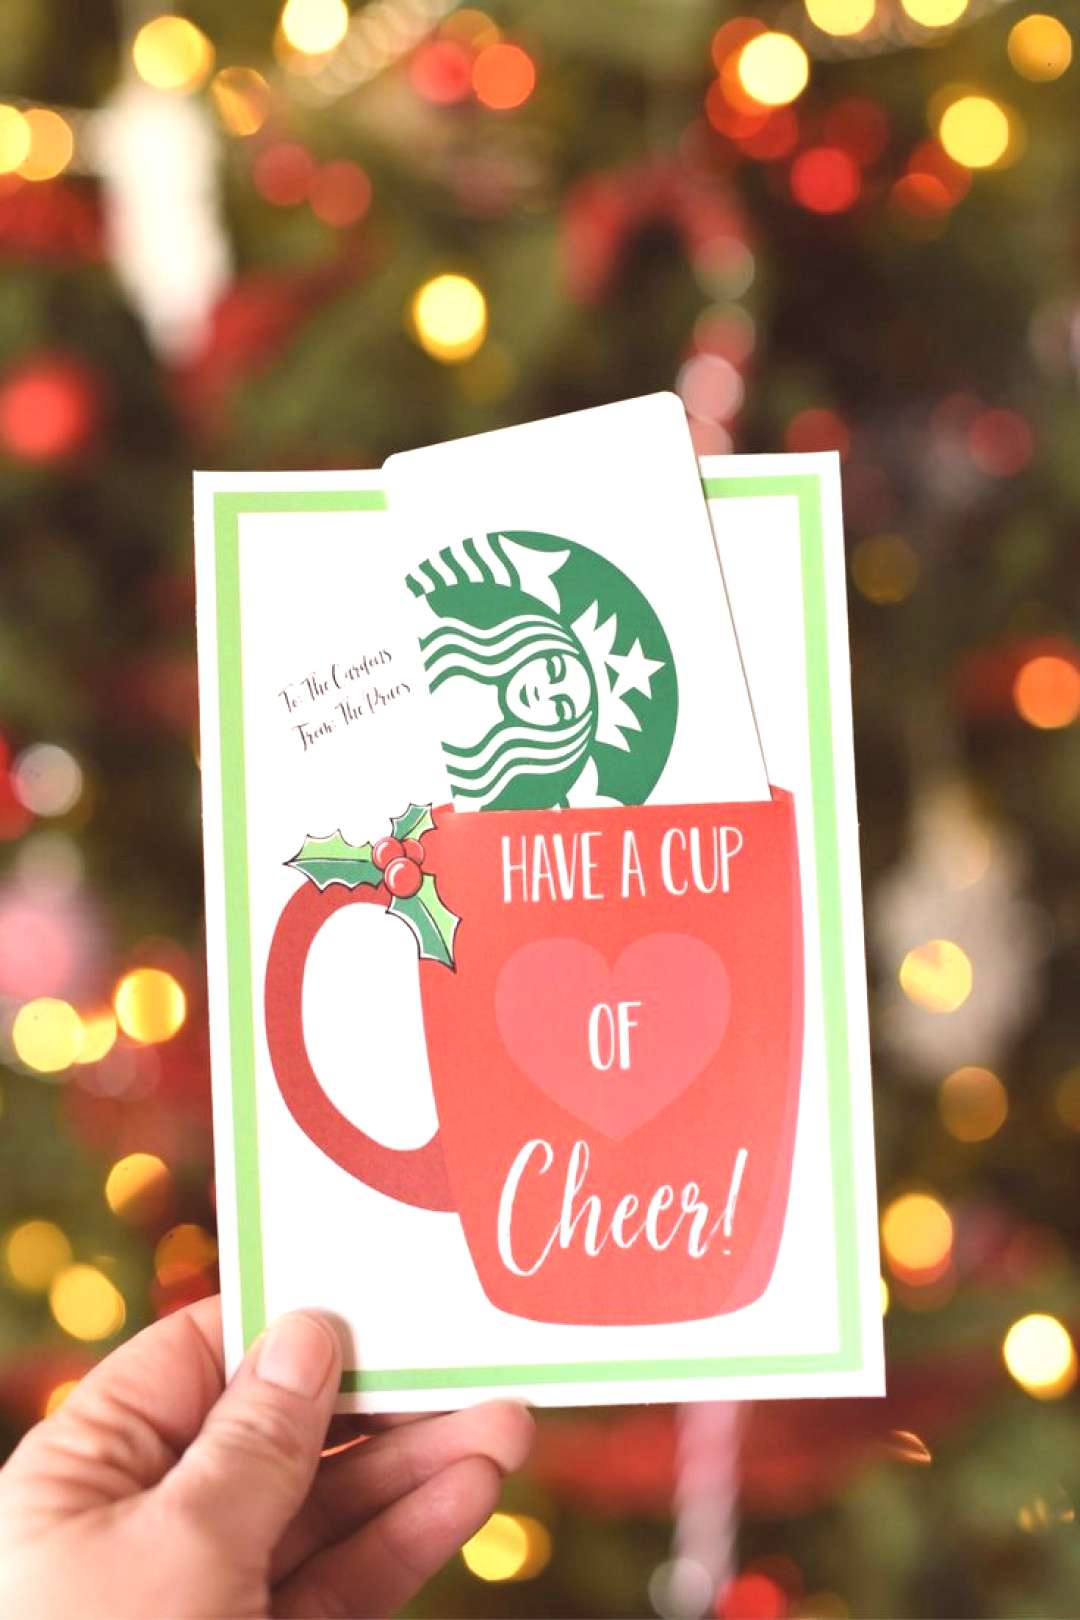 Have a Cup of Cheer Gift Card Holder-Just add a cute gift card like Starbucks to this printable gif